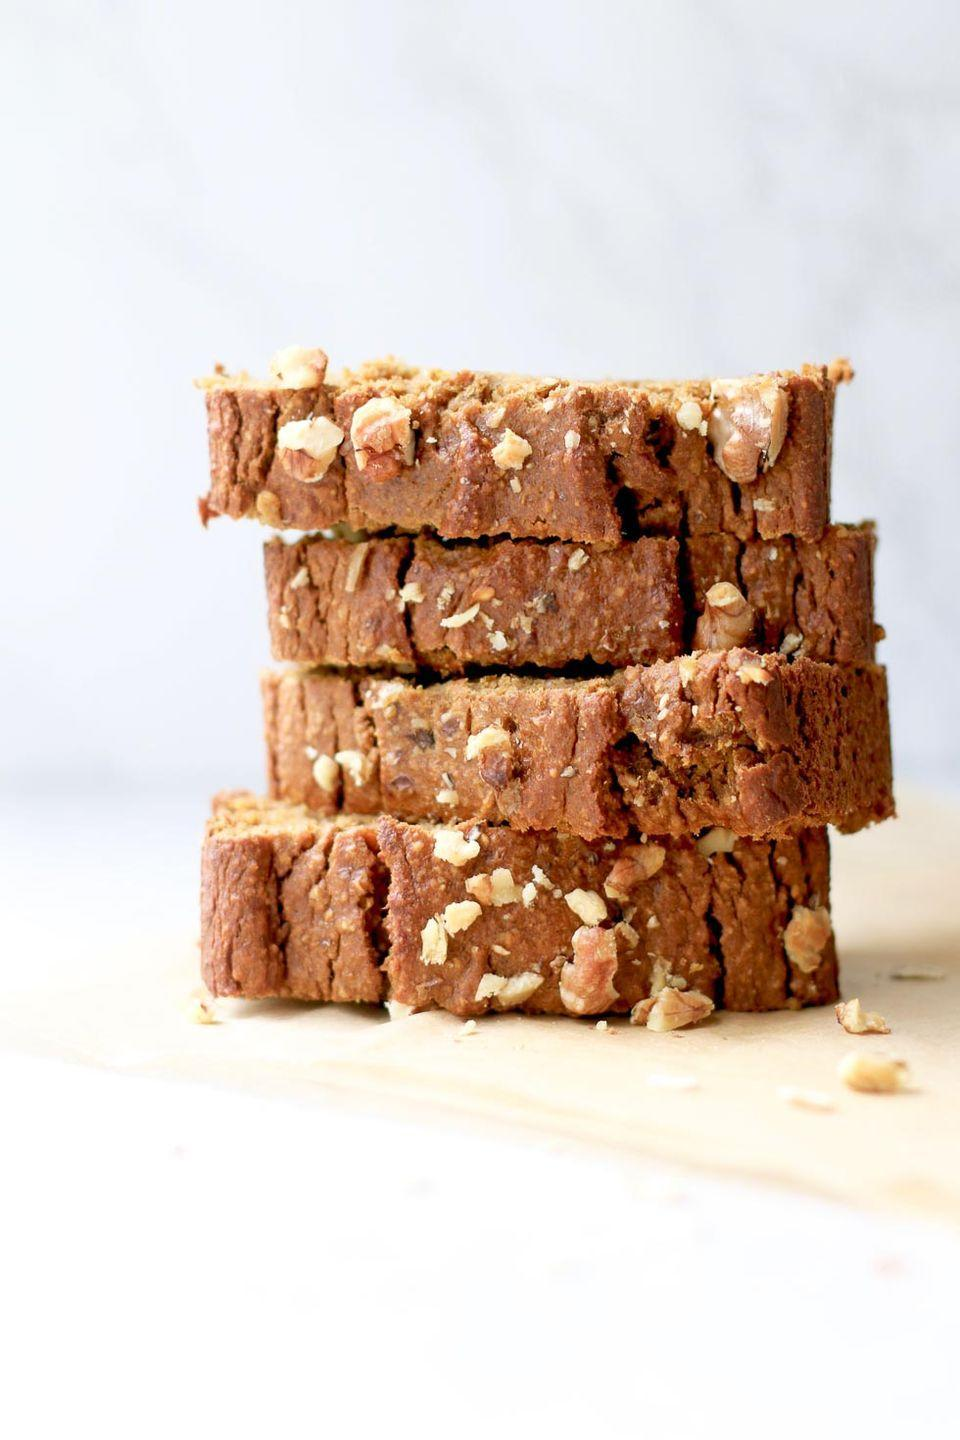 """<p>Make one of these at the beginning of the week, and you've got a healthy breakfast every morning. </p><p><strong>Get the recipe at <a href=""""https://marisamoore.com/gluten-free-pumpkin-banana-nut-bread/"""" rel=""""nofollow noopener"""" target=""""_blank"""" data-ylk=""""slk:Marisa Moore"""" class=""""link rapid-noclick-resp"""">Marisa Moore</a>.</strong> </p>"""